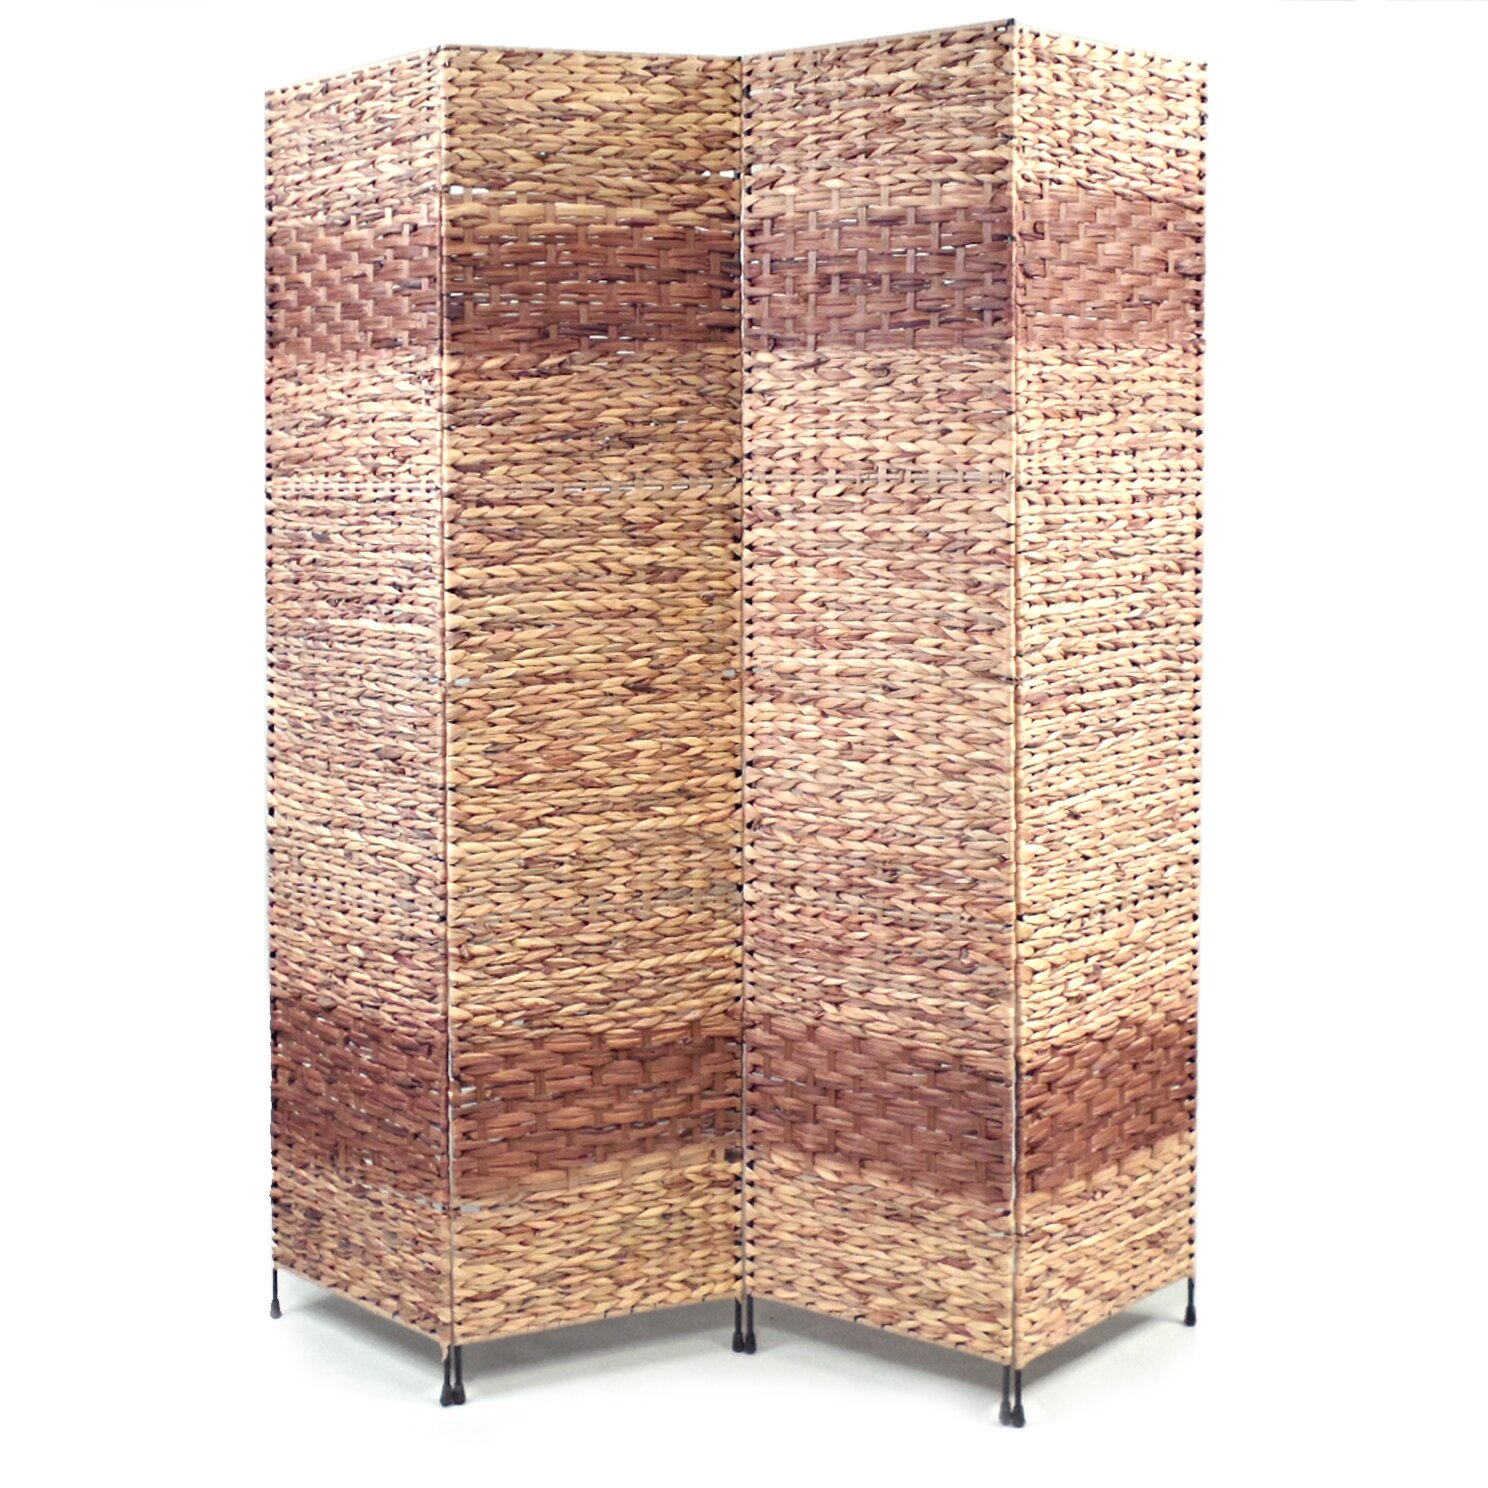 Proman 67 x 60 jakarta b folding screen 4 panel room for Four panel room divider screen